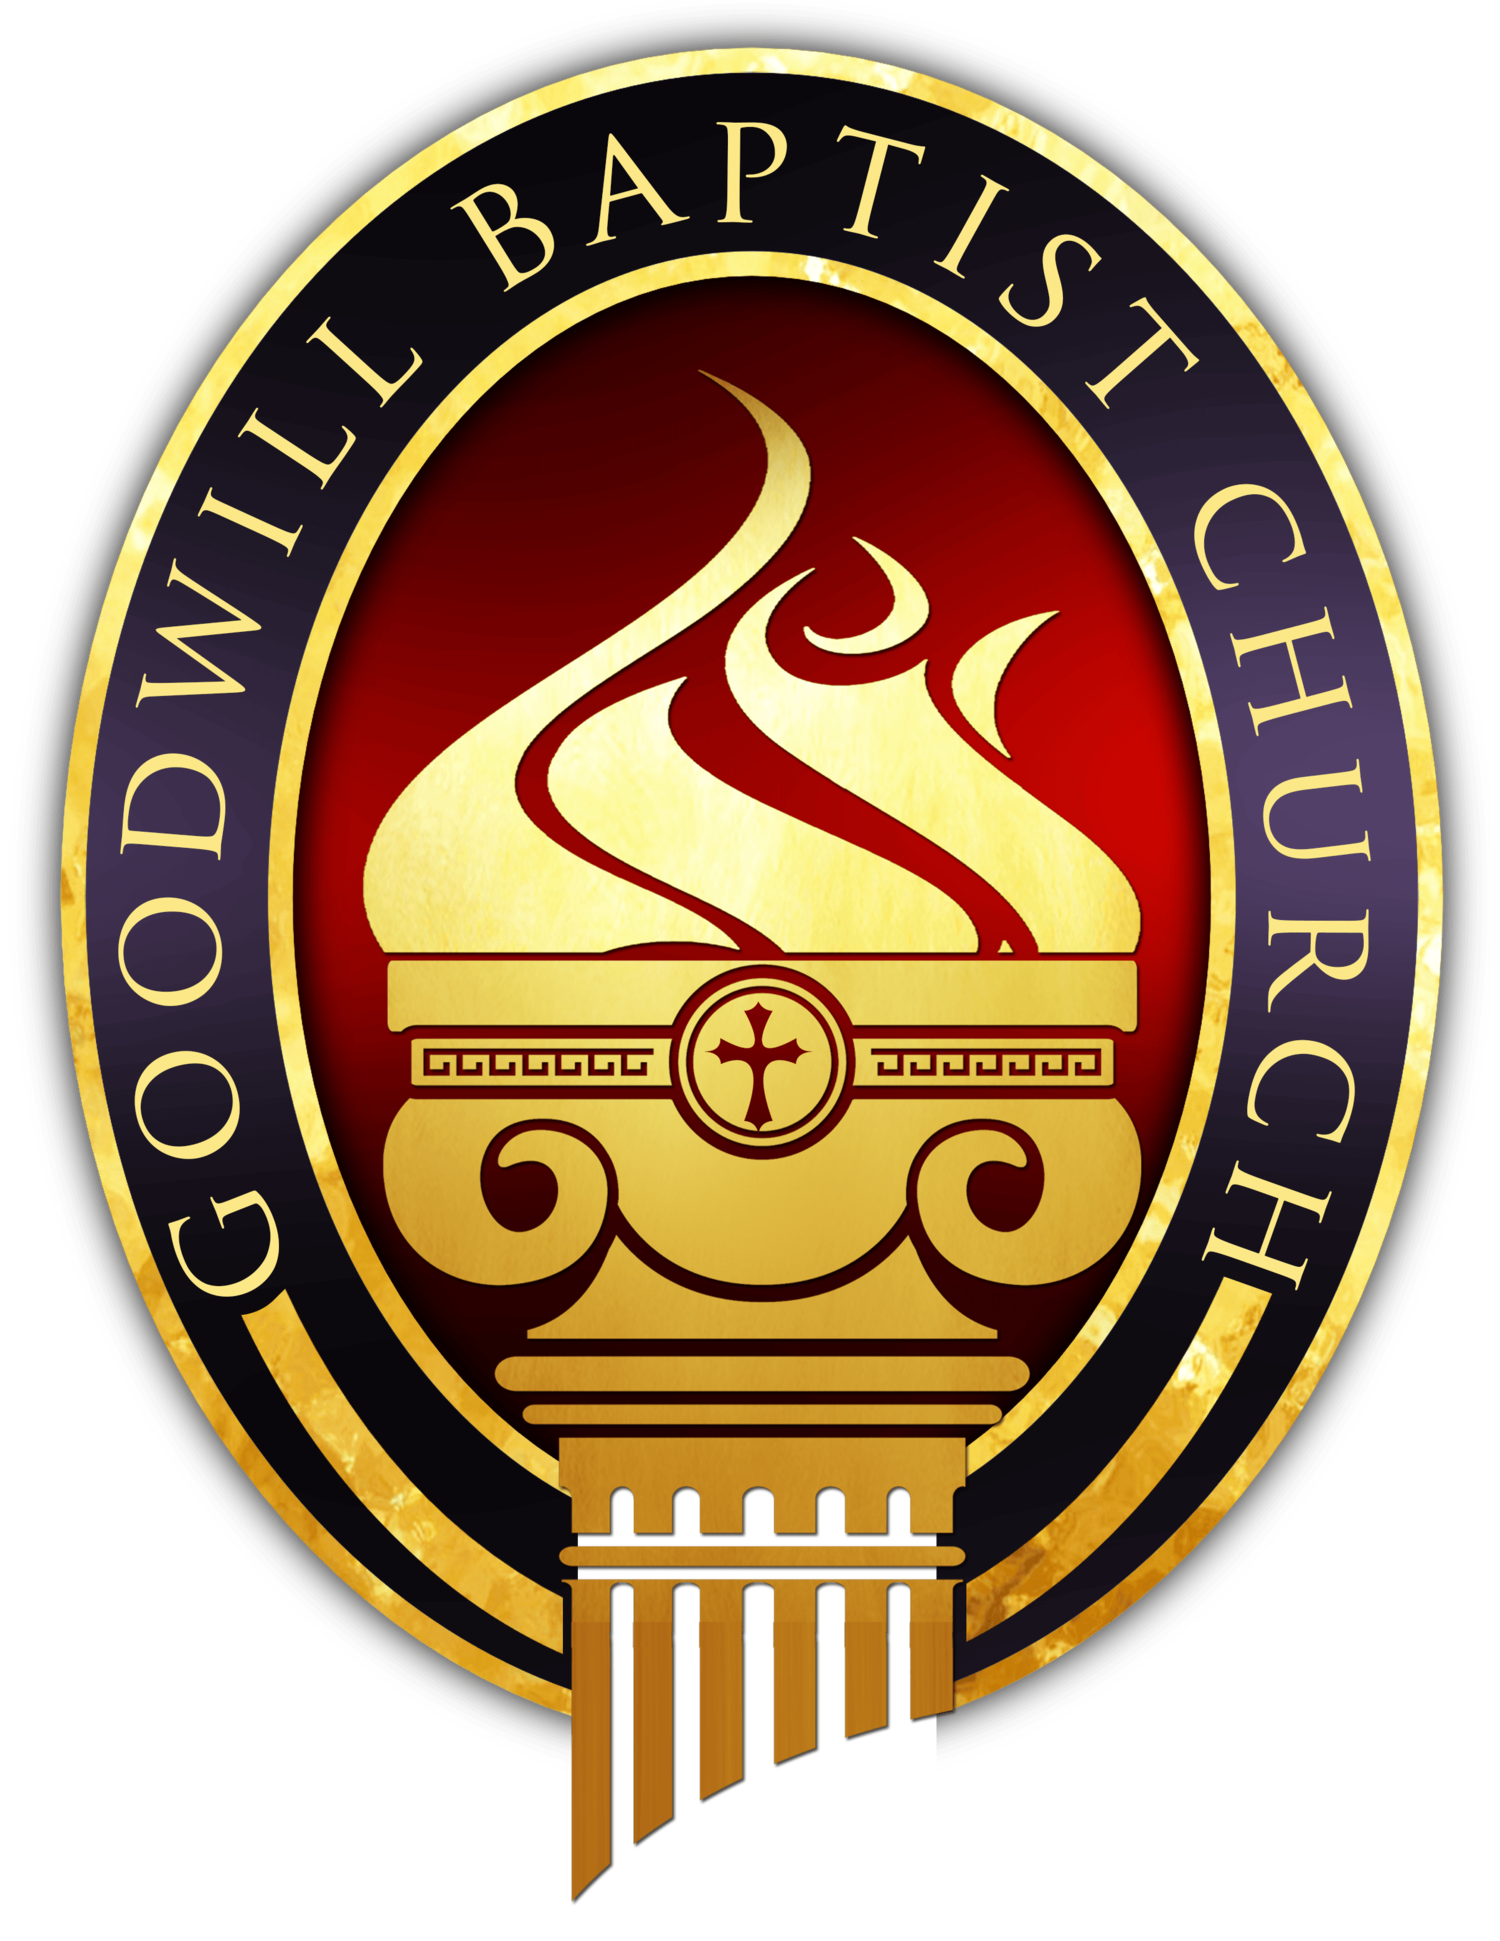 Goodwill Baptist Church